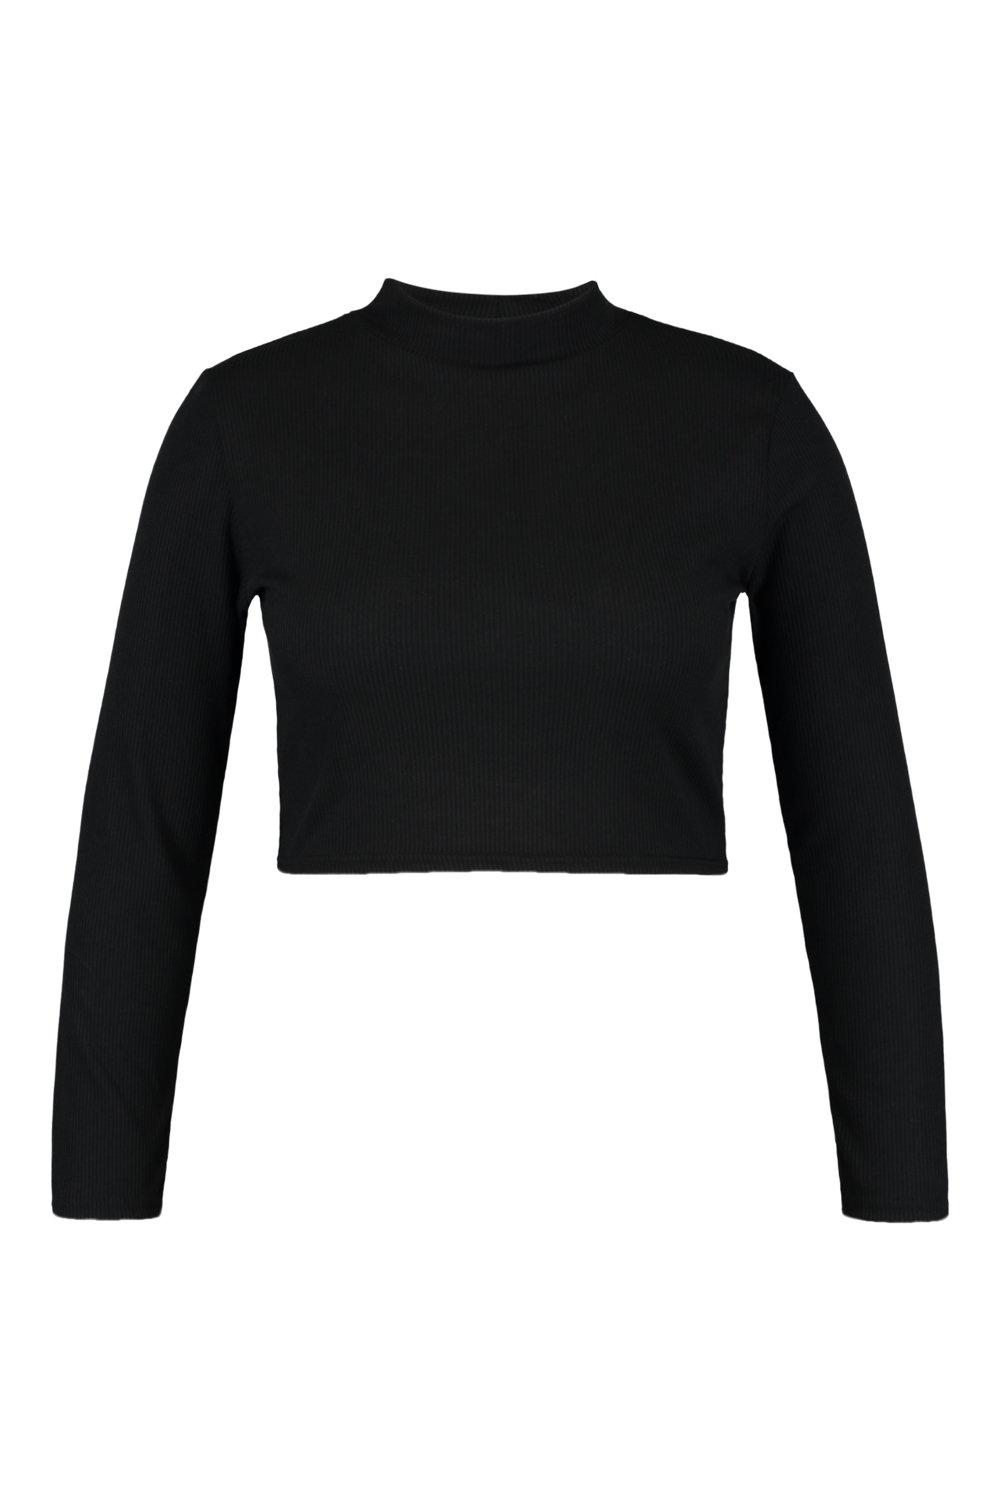 black Rib High Sleeve Neck Long Plus Top P81RYnn